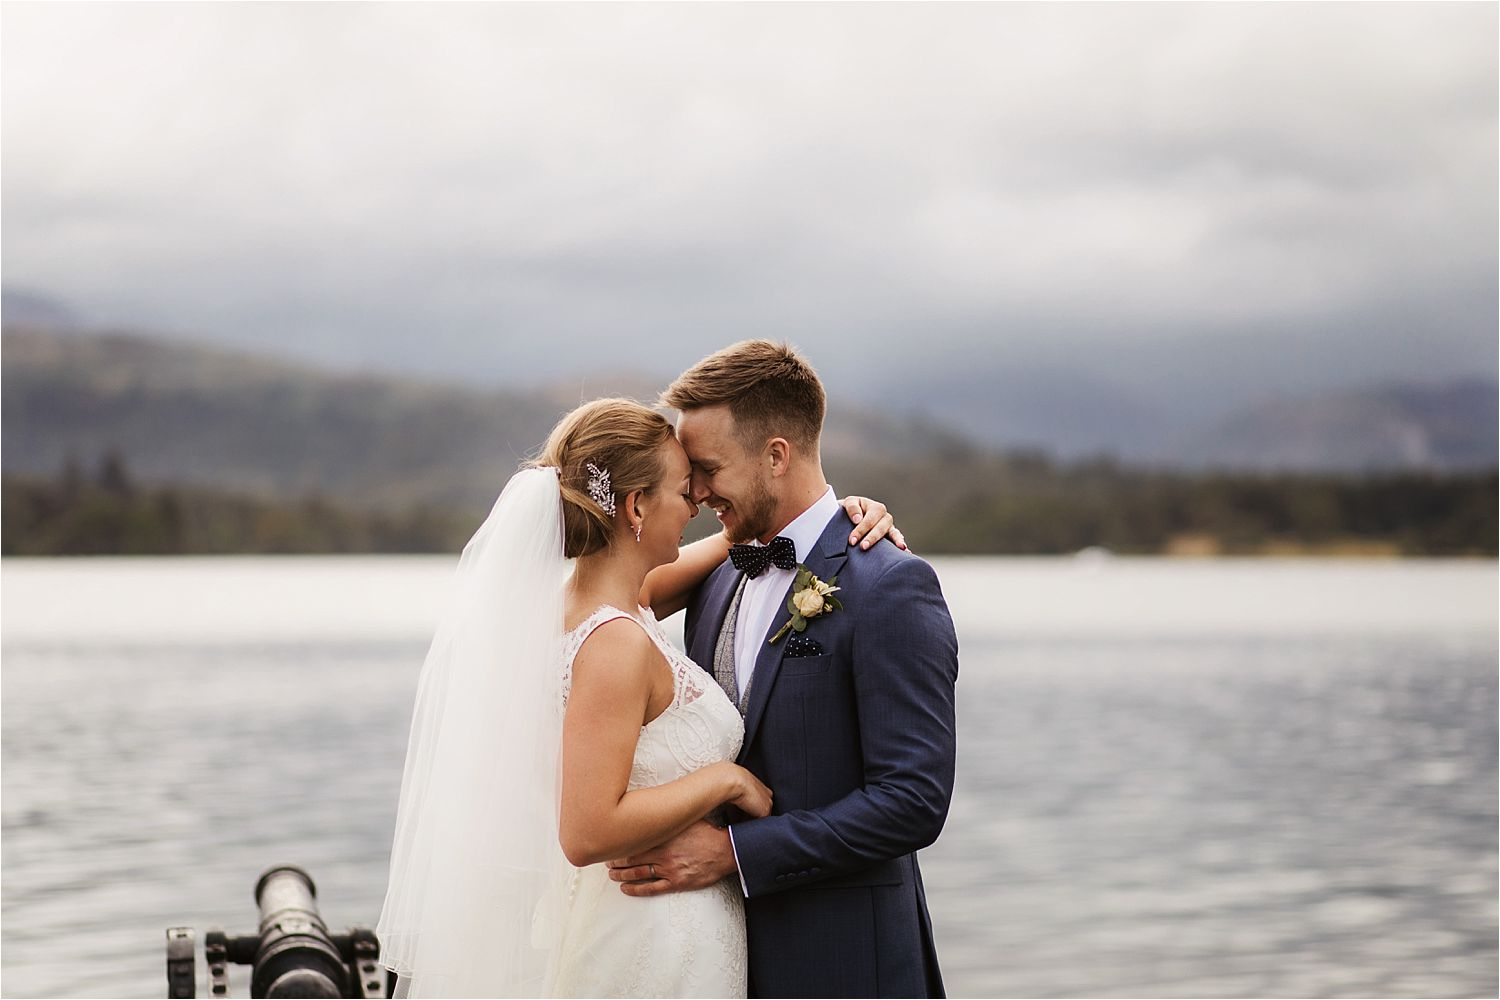 Bride and groom, heads together on jetty with Lake Windermere in background